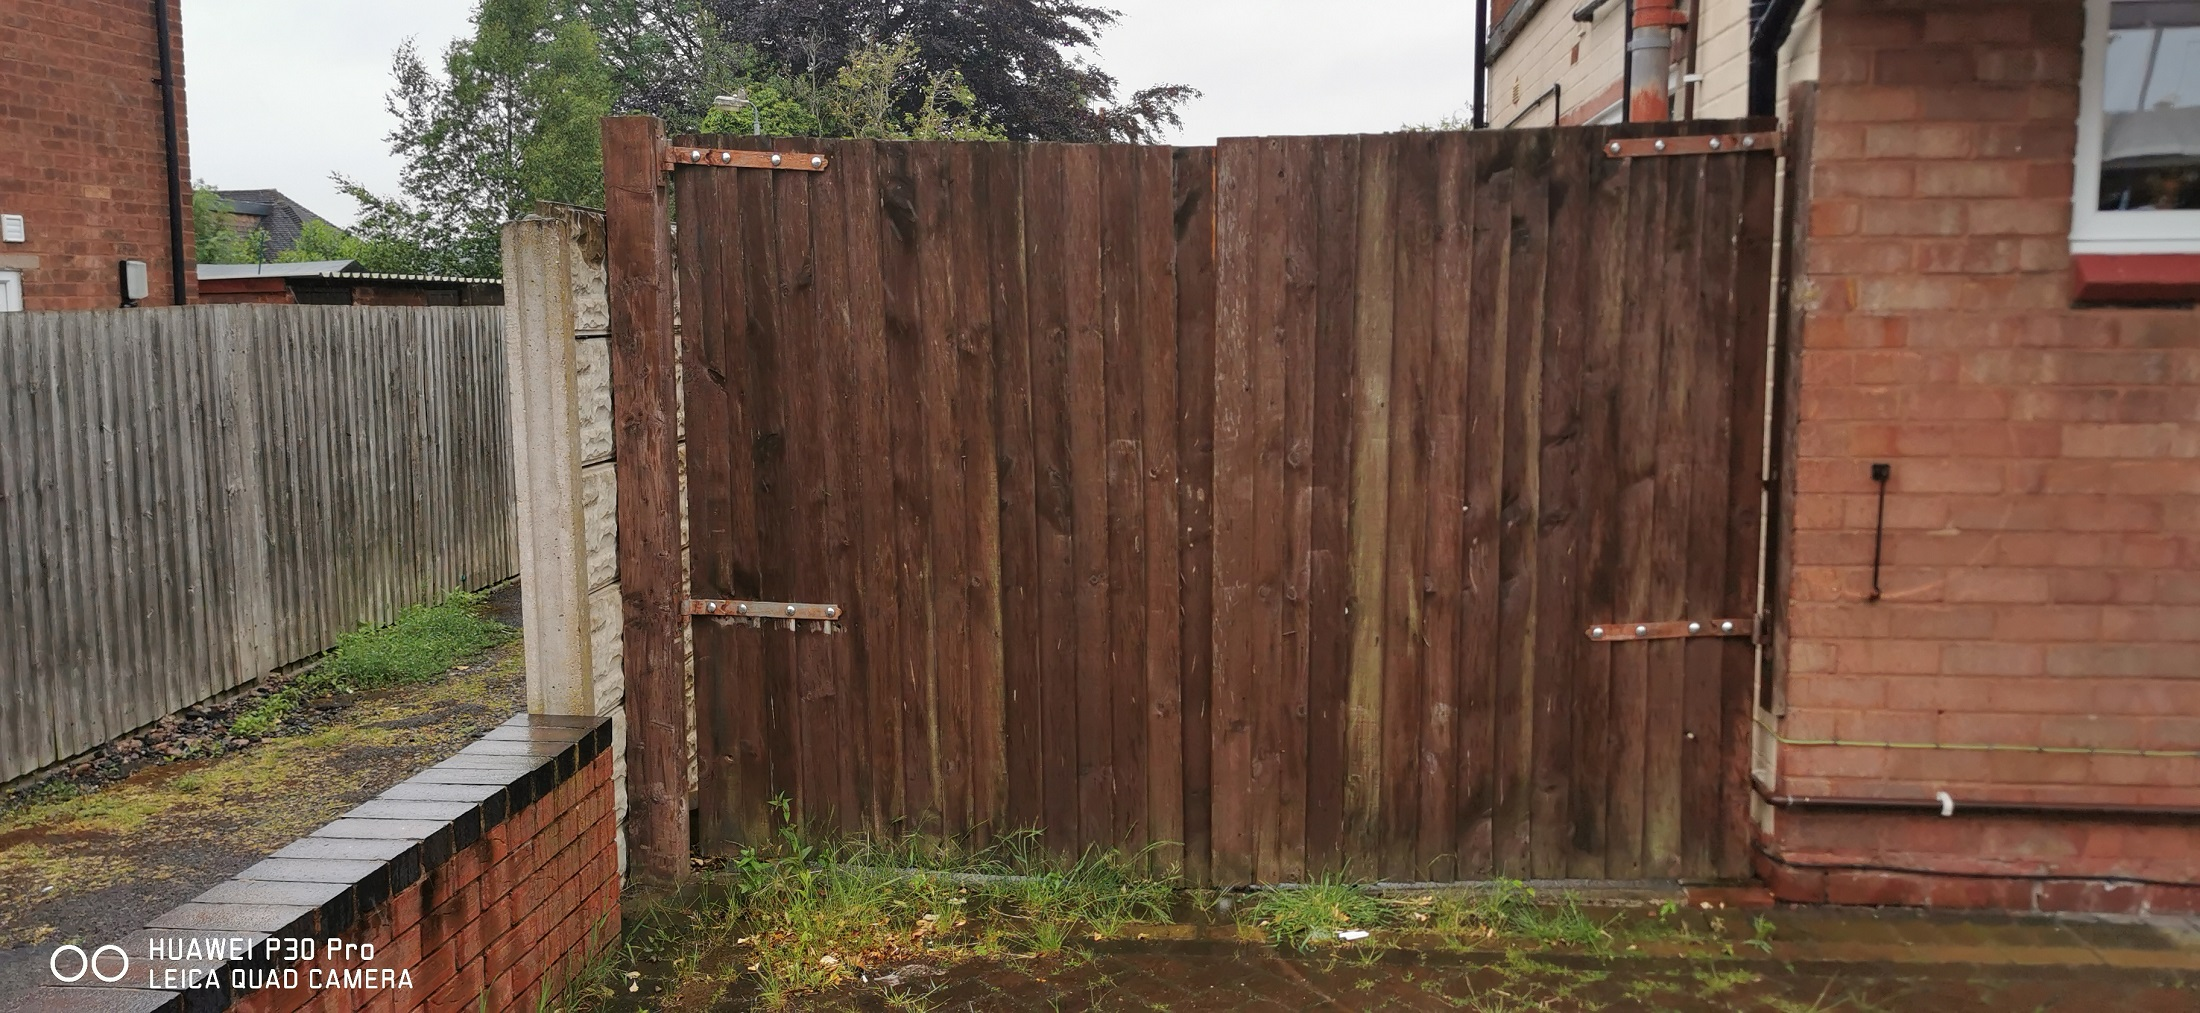 Old wooden gates in need of replacement